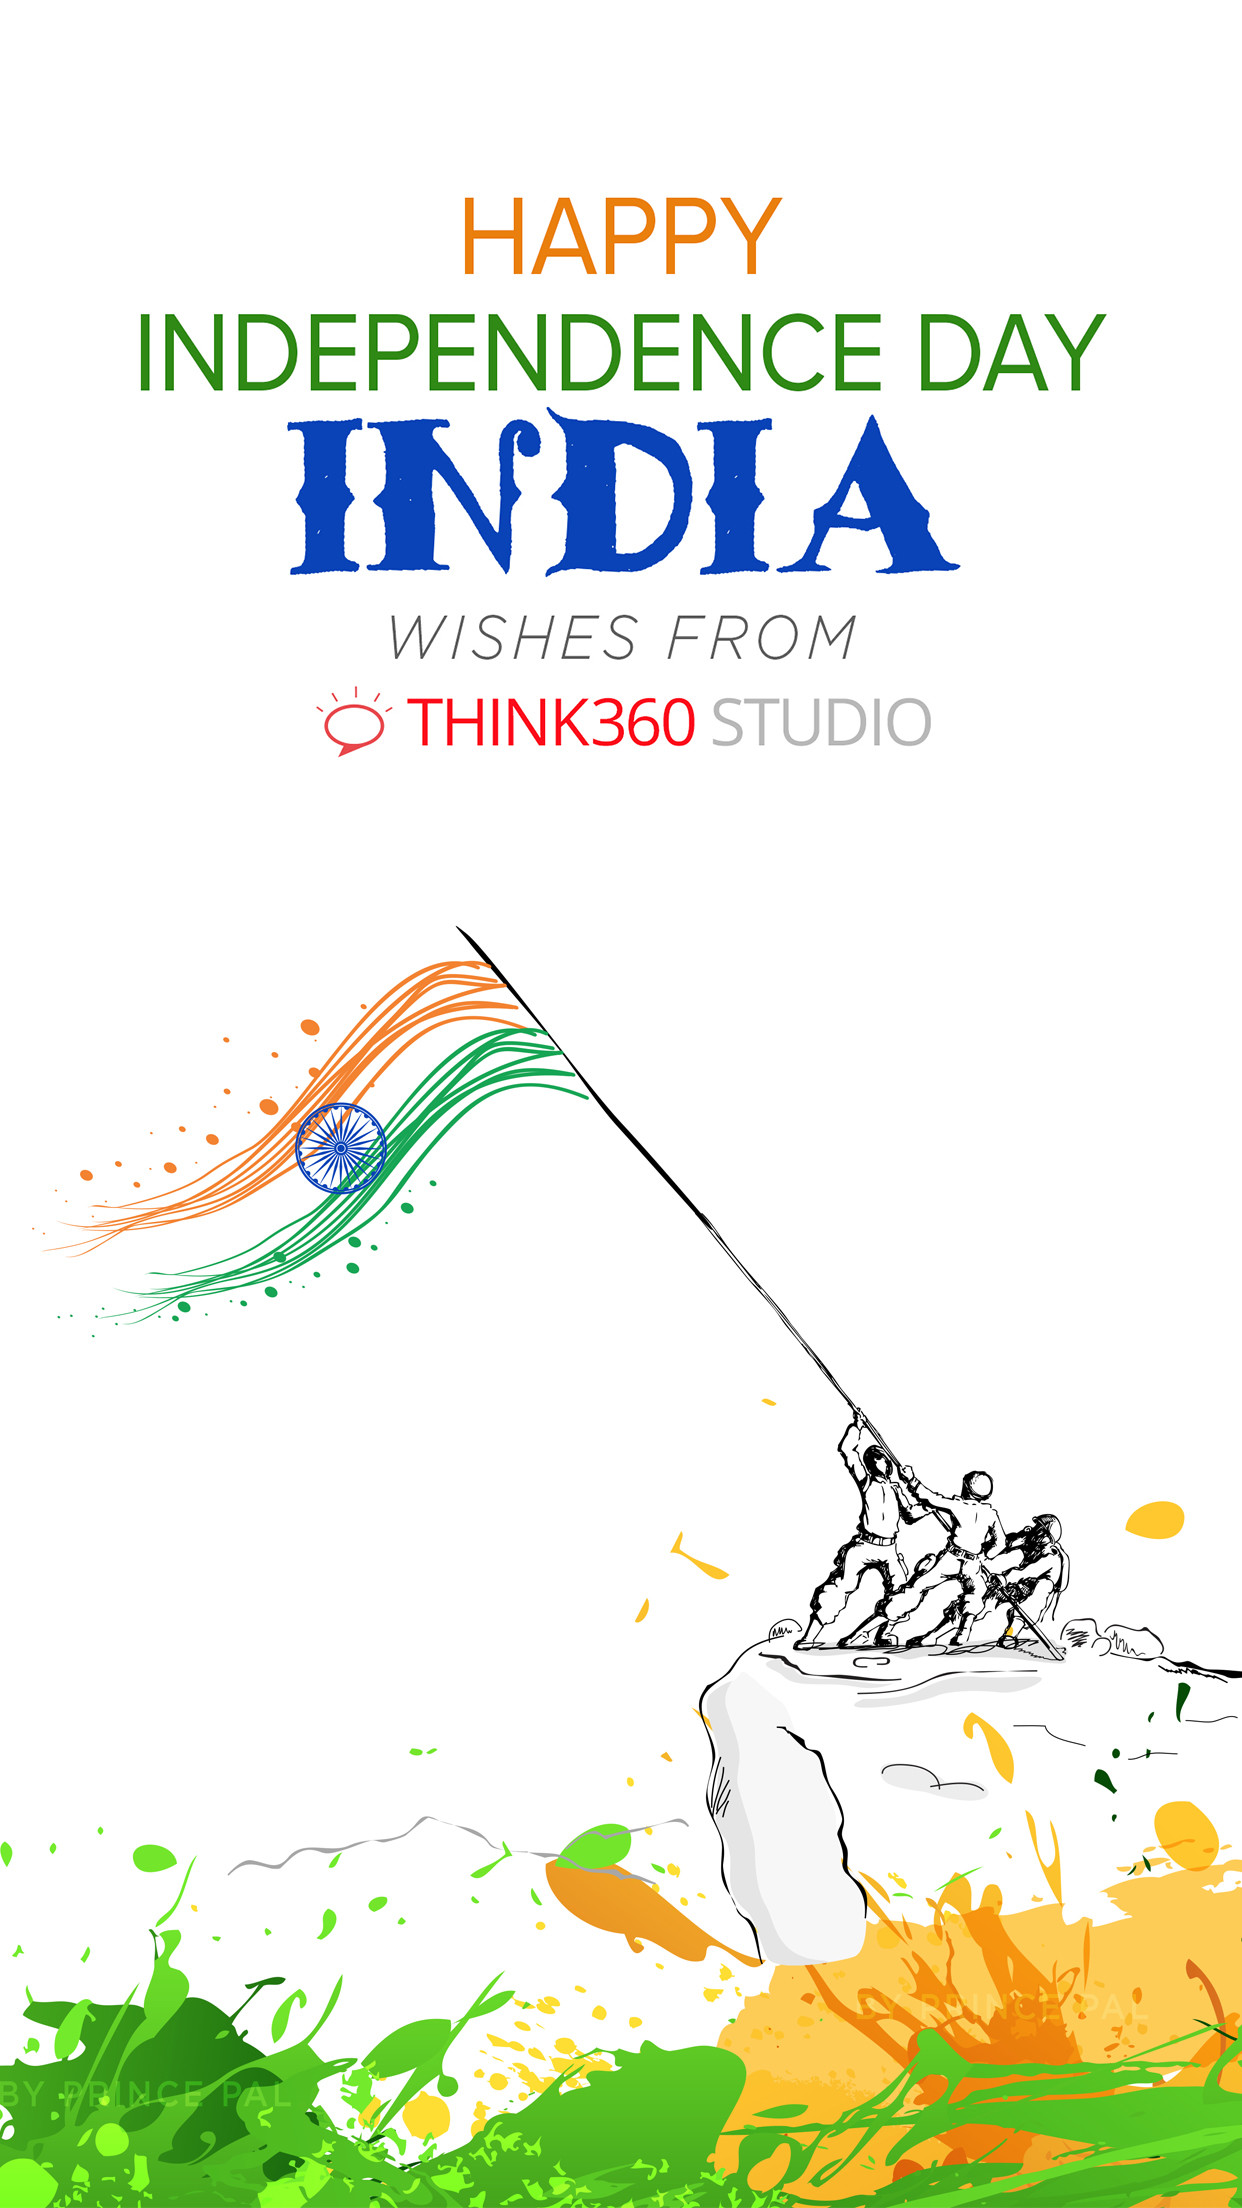 Indian Independence Day Hd Pic Wallpaper 79 Images